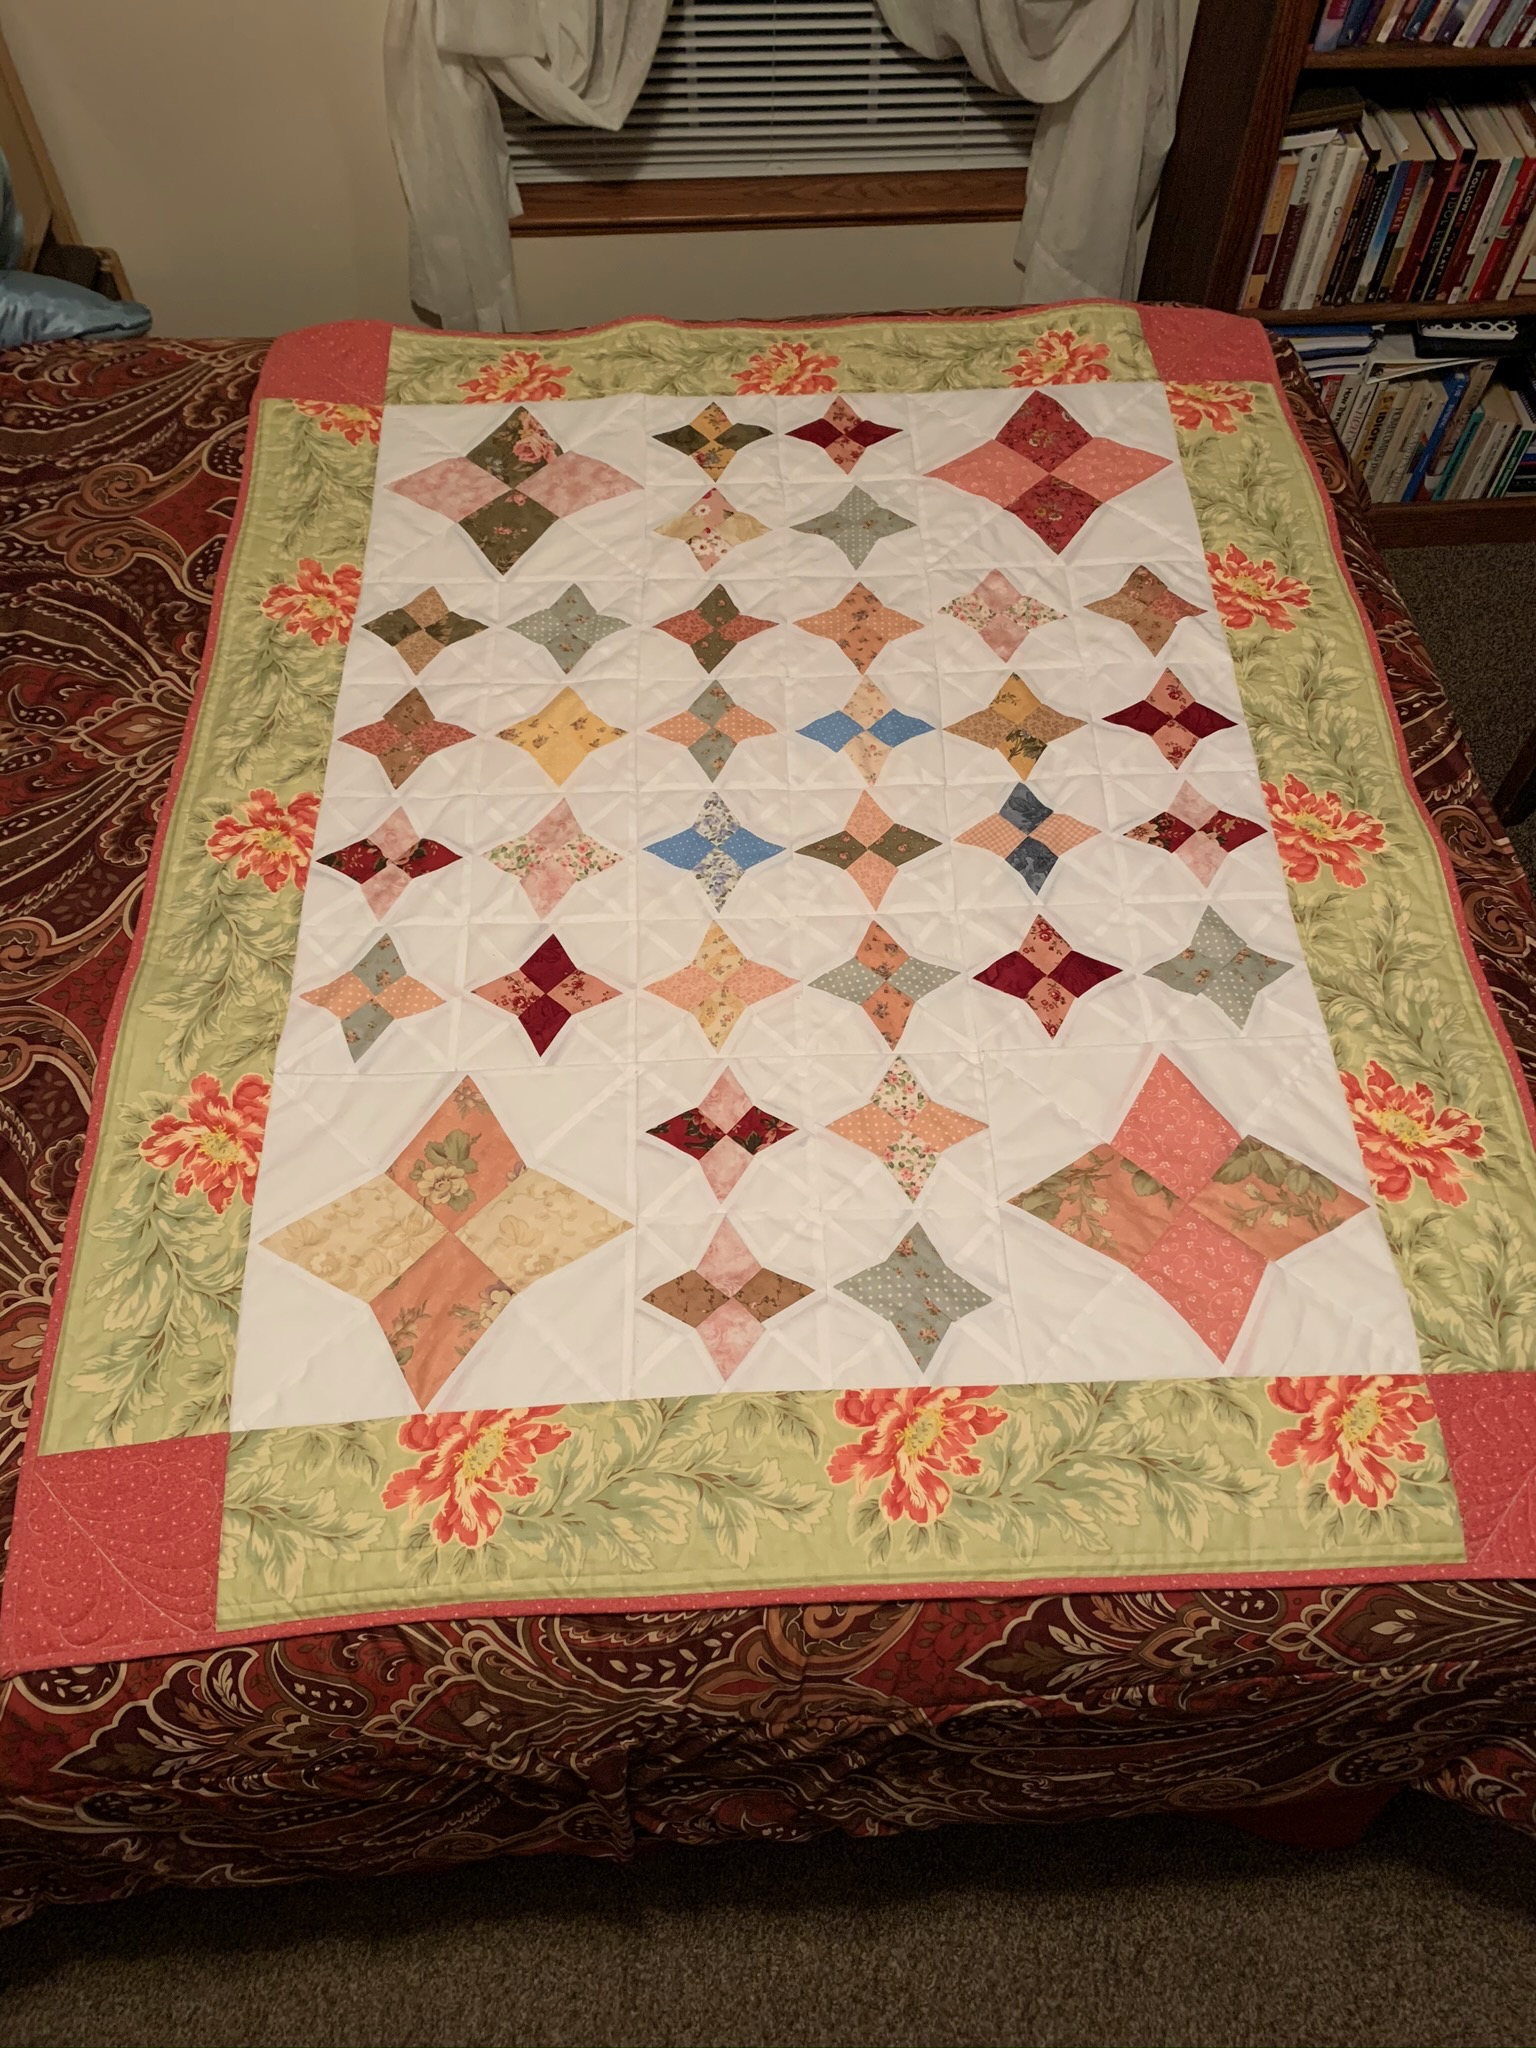 My Journey To Making A Periwinkle Quilt